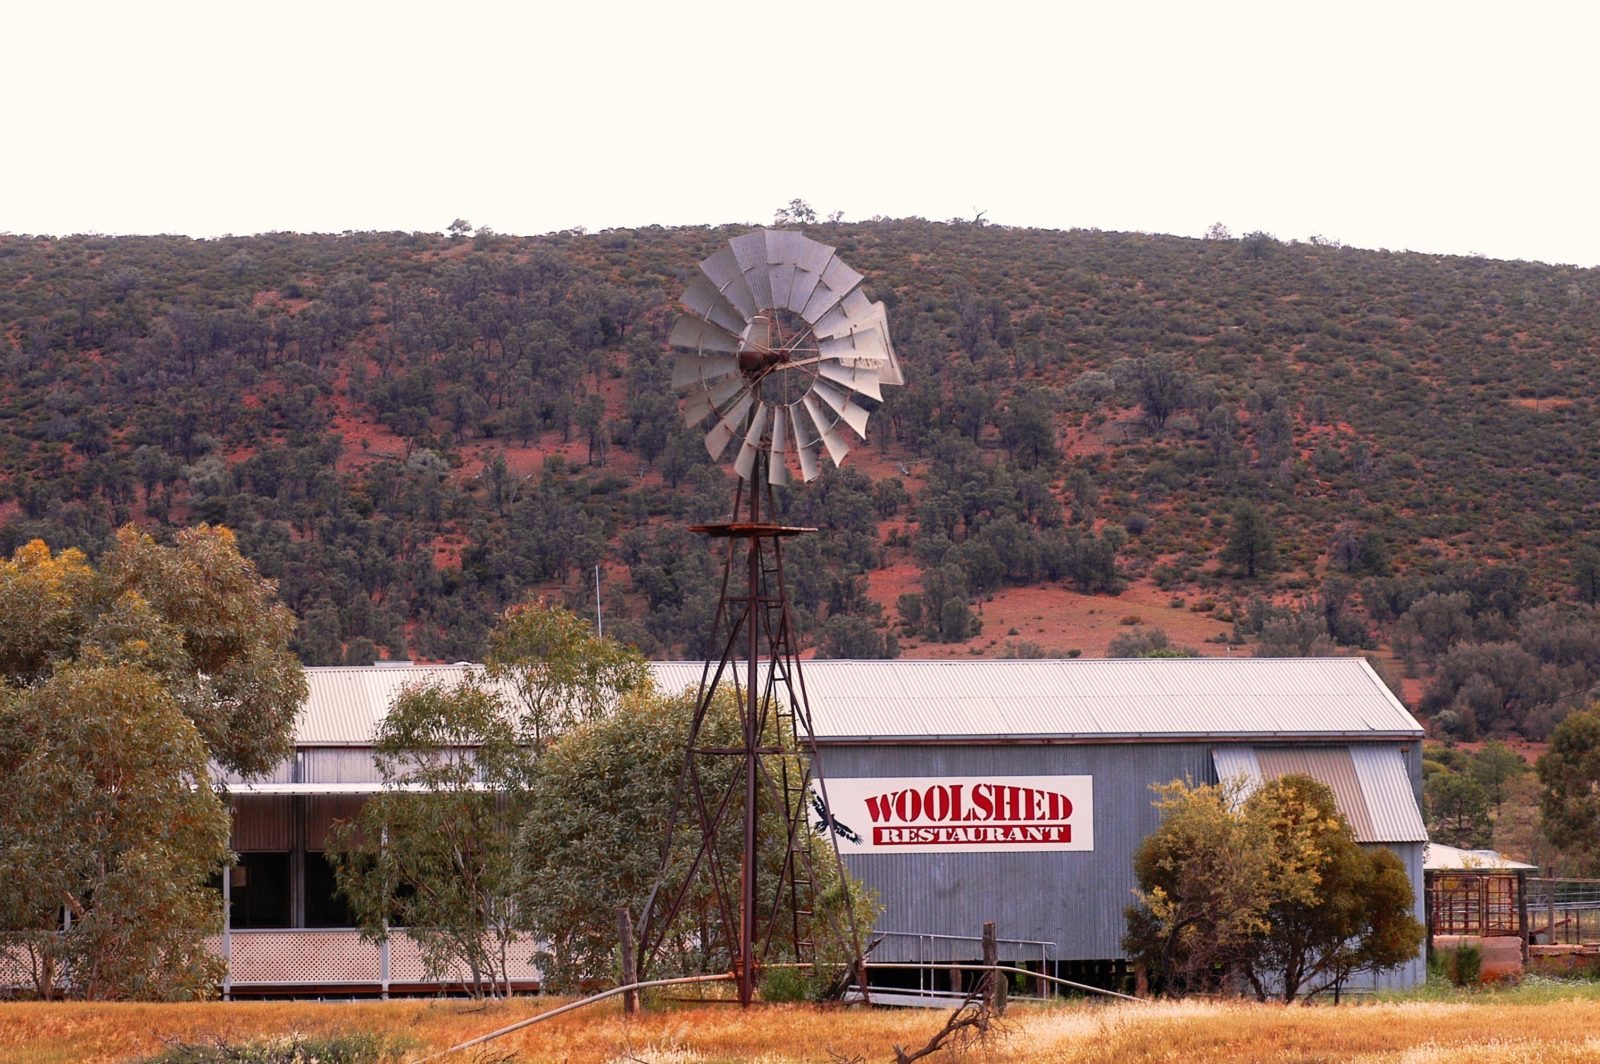 The Woolshed Restaurant, Wilpena Pound, Flinders Ranges, South Australia